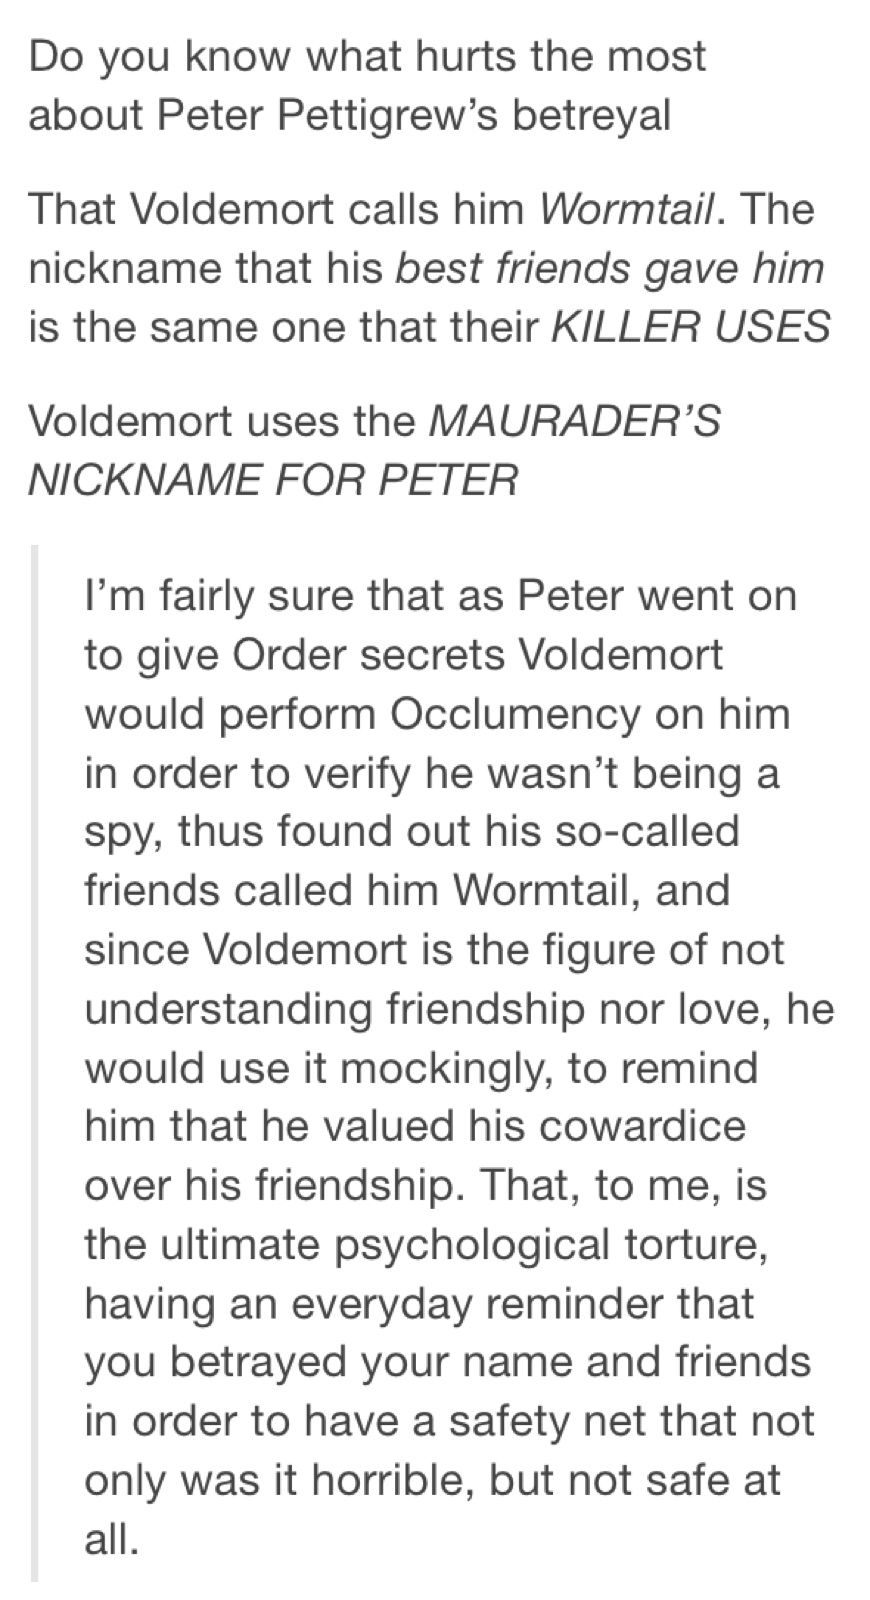 I Love PeopleS Theories And How They Truly Make Hp Their Own